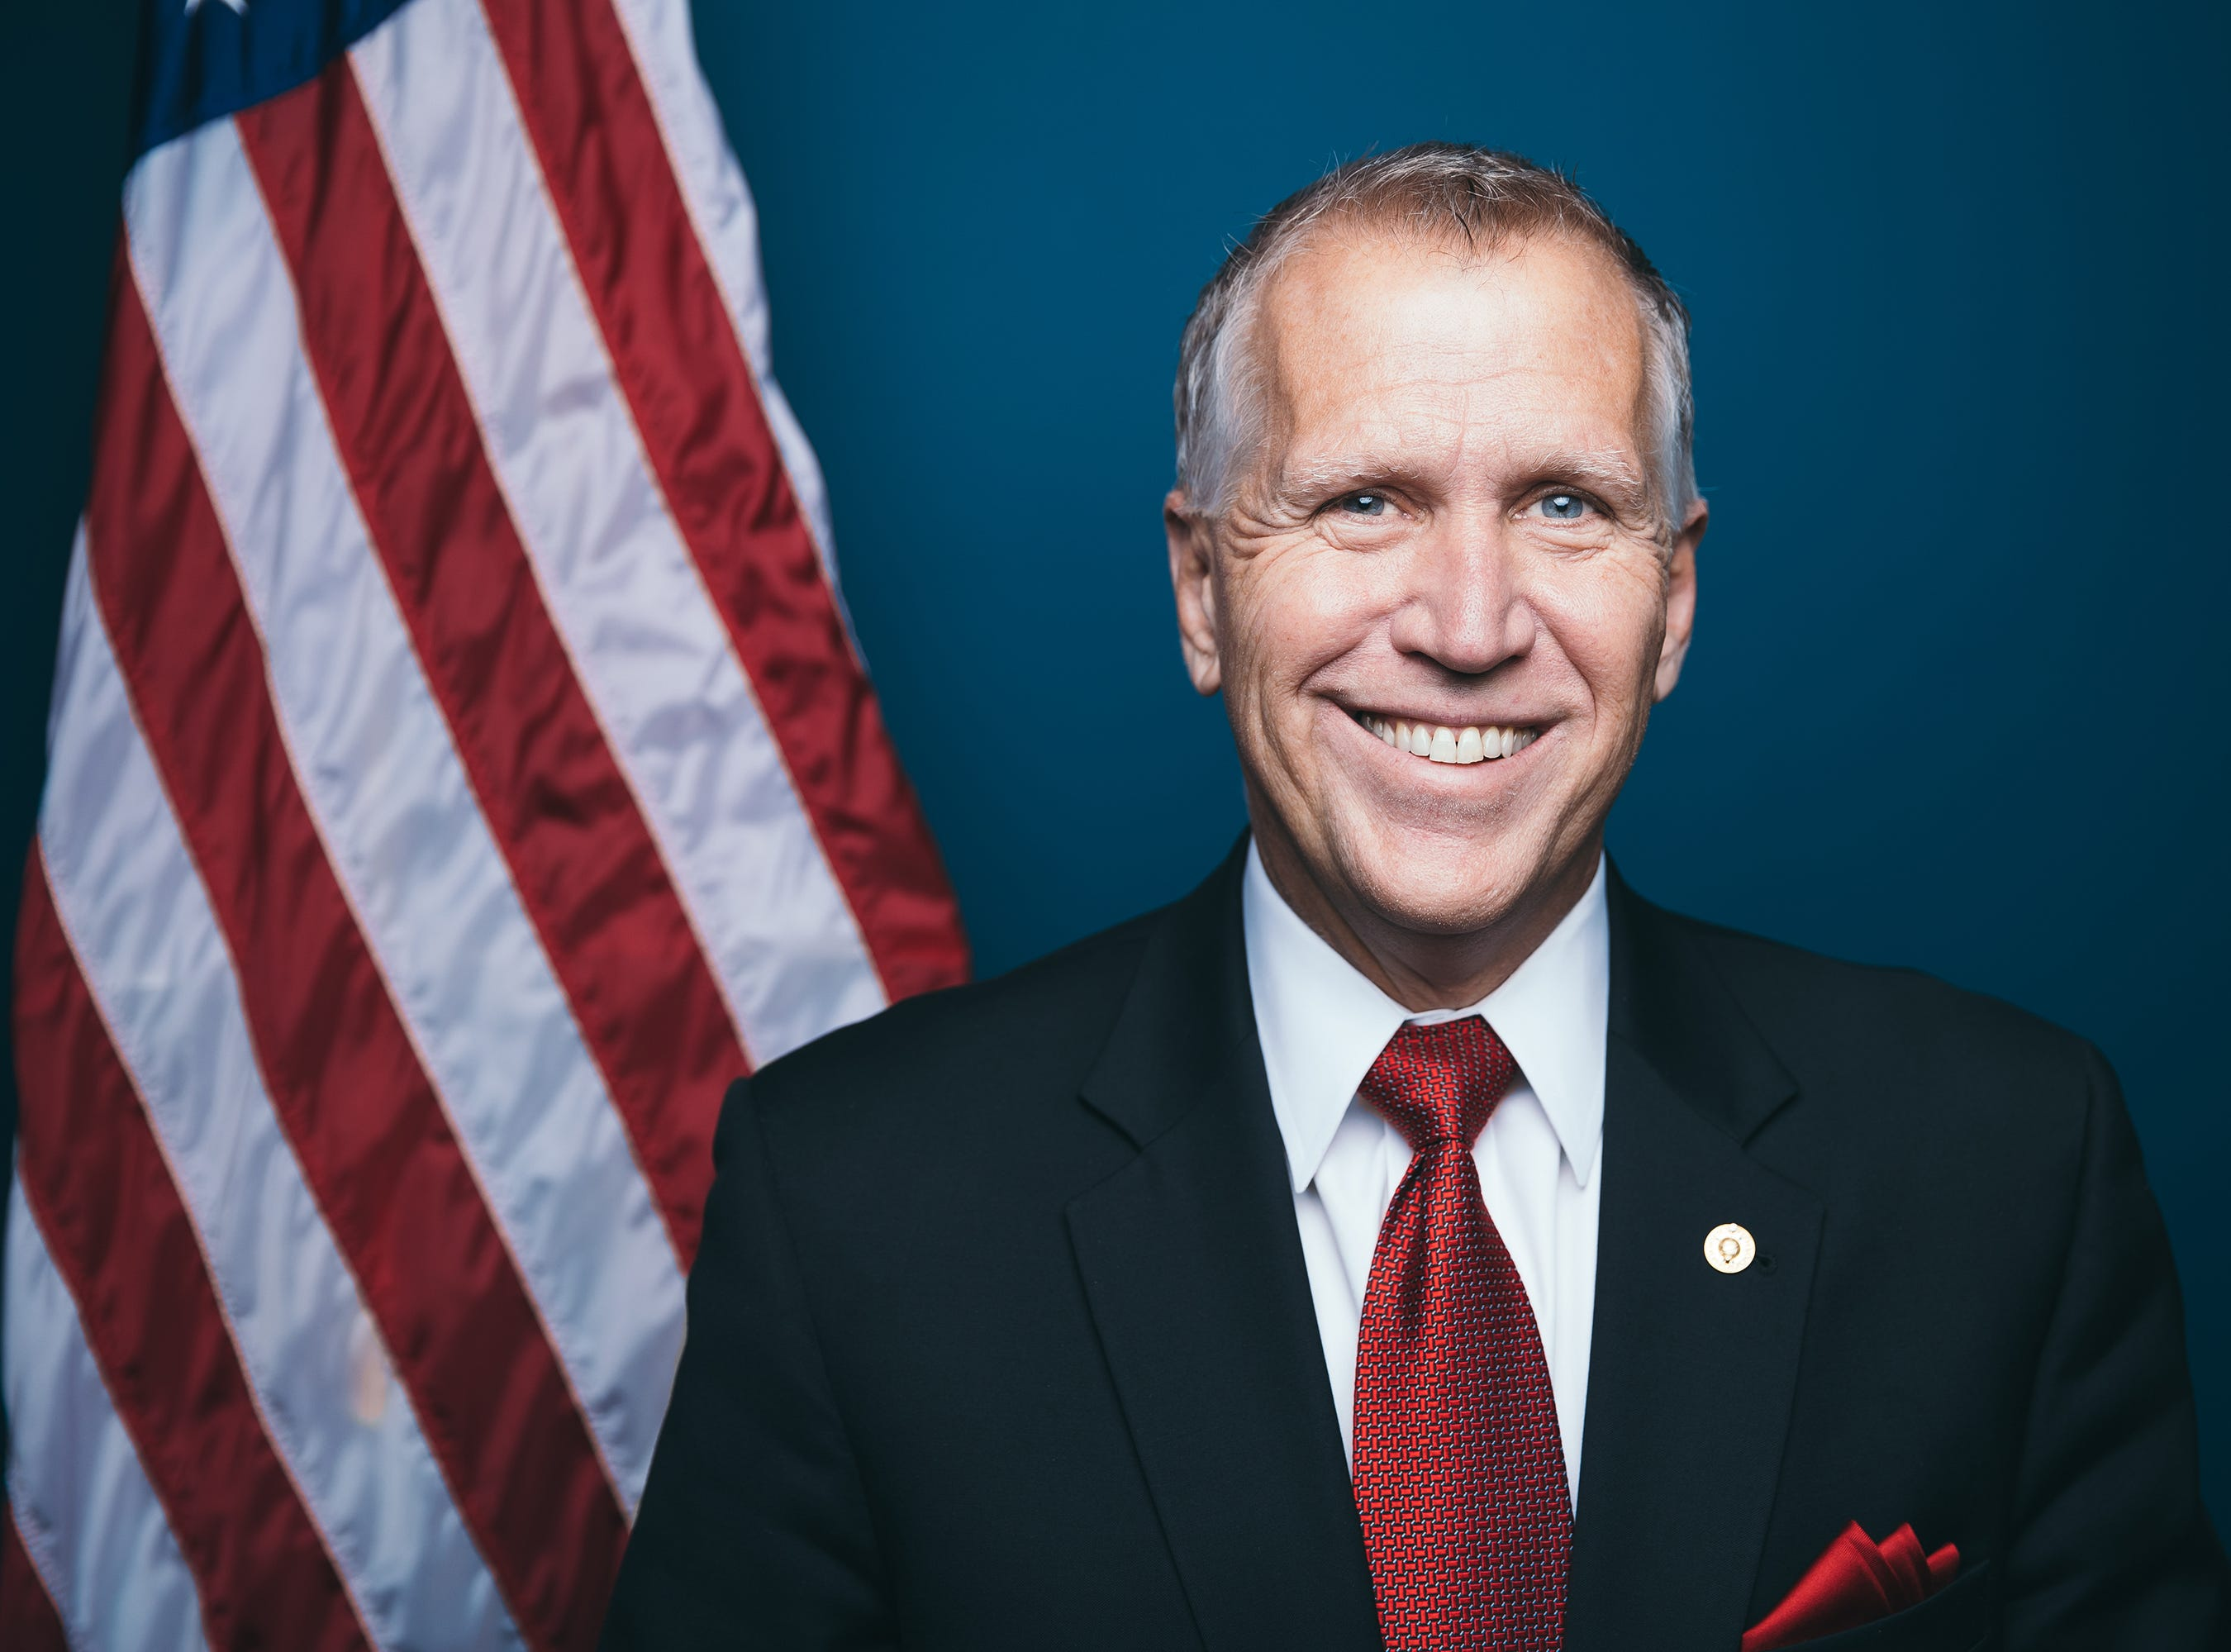 Thom Tillis to be featured speaker at Charles Taylor's annual holiday dinner